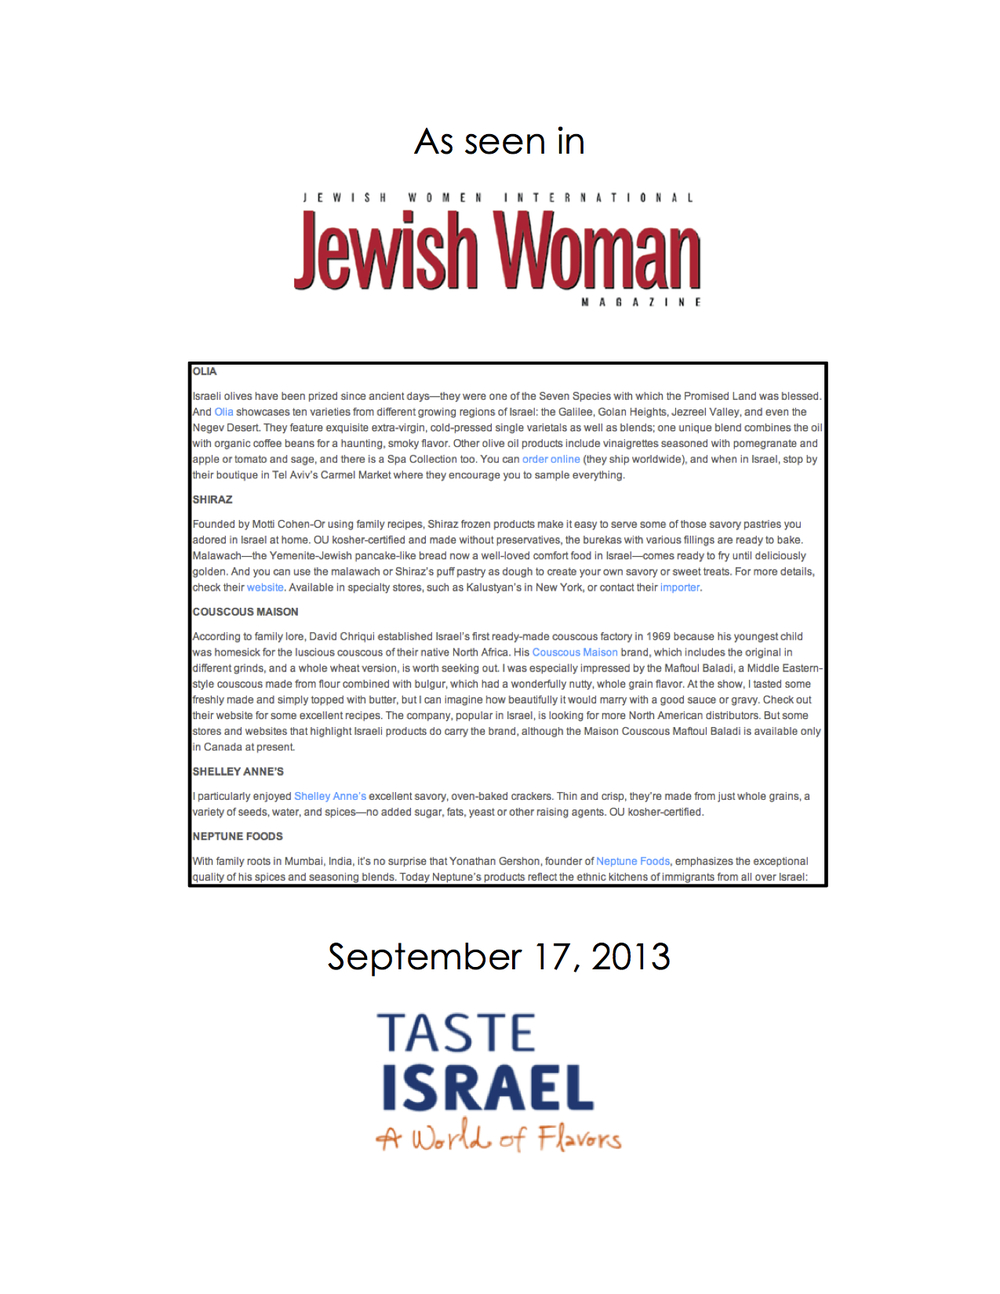 Israel-As seen in- Jewish Woman copy.jpg